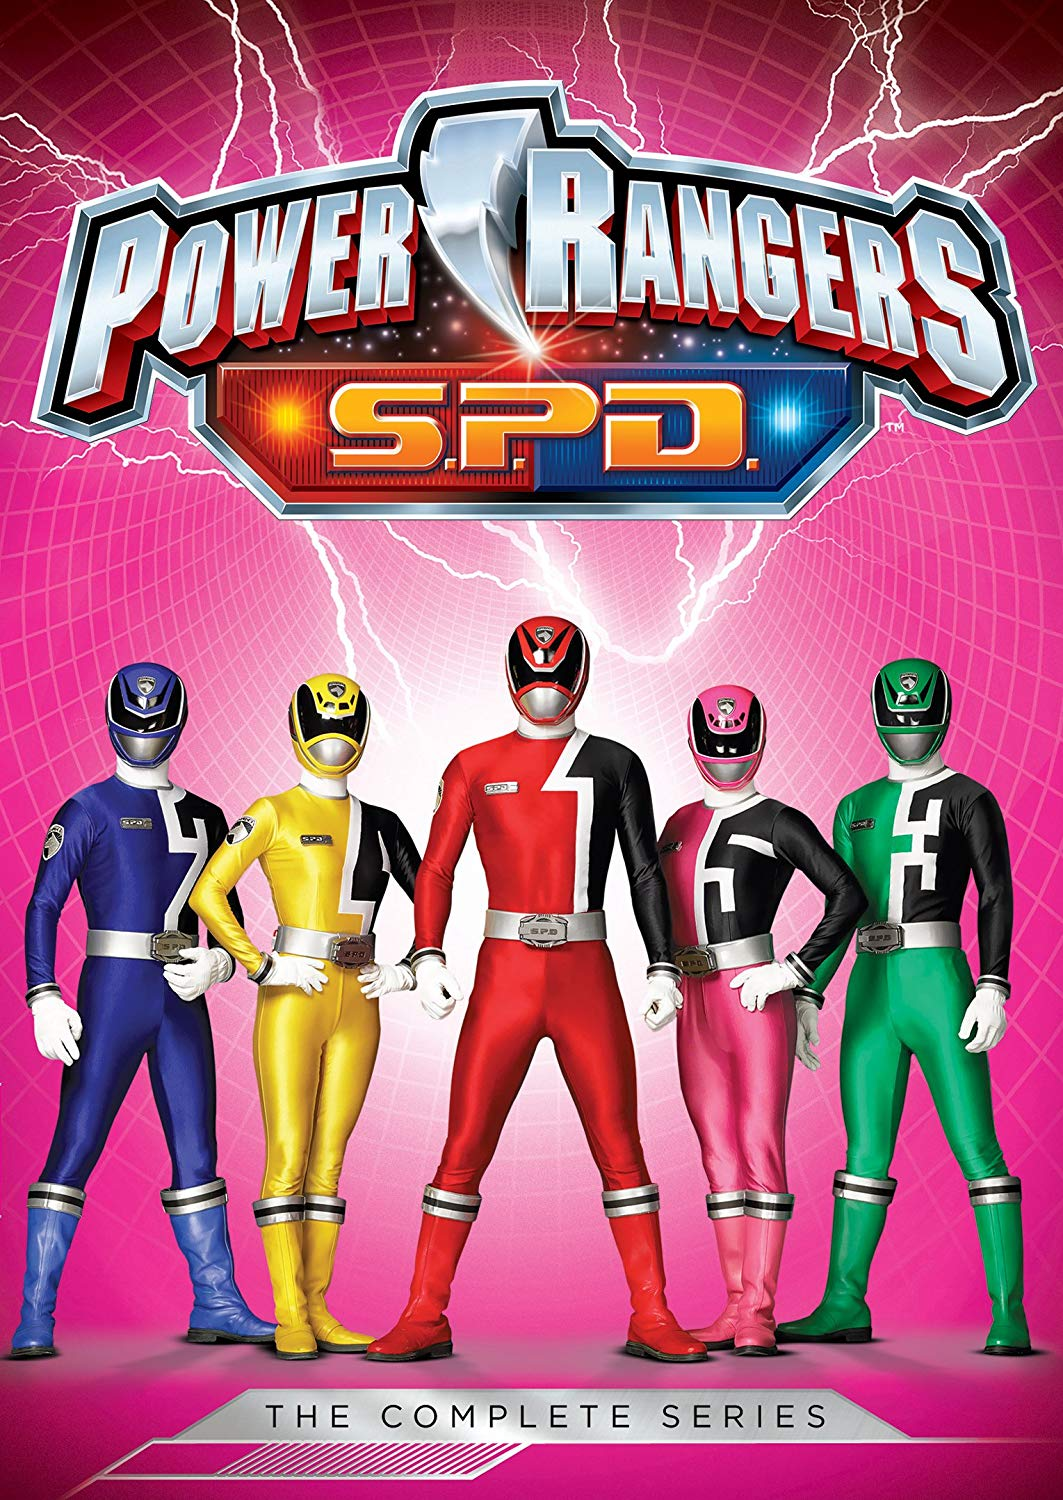 Power Rangers S P D  (TV Series 2005) - IMDb